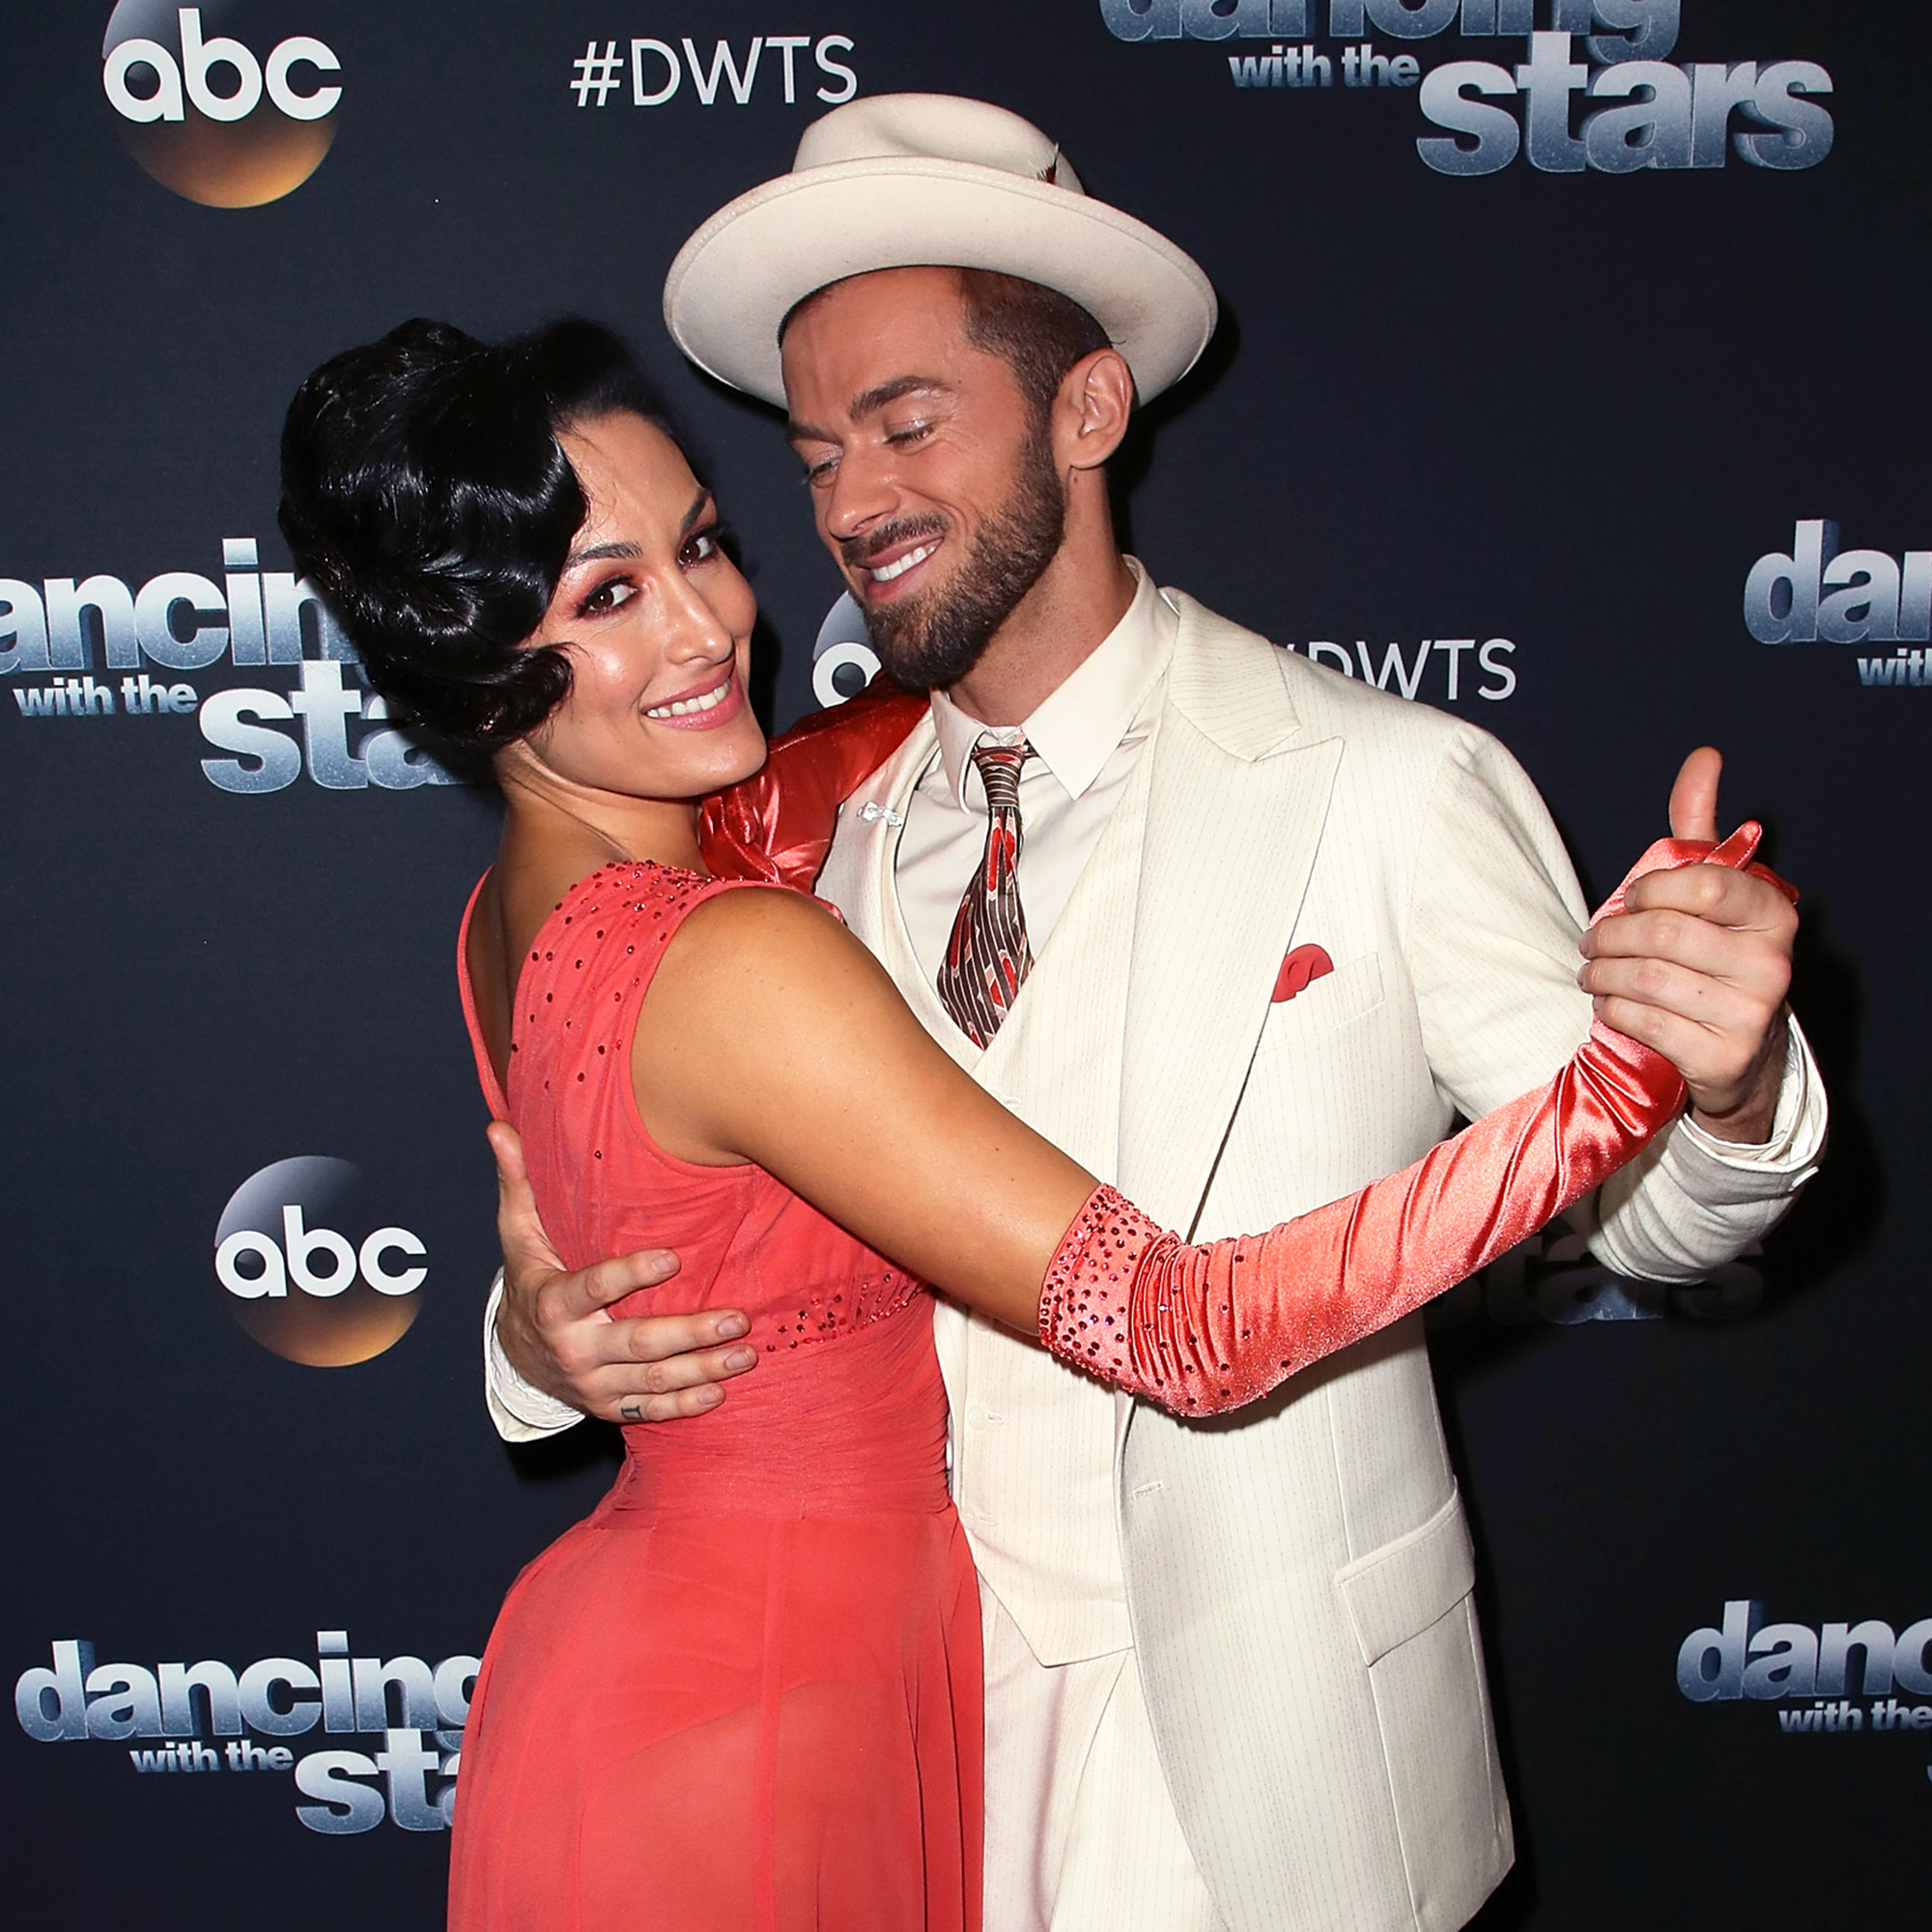 Dancing With the Stars: 10 Real-Life Couples | Billboard